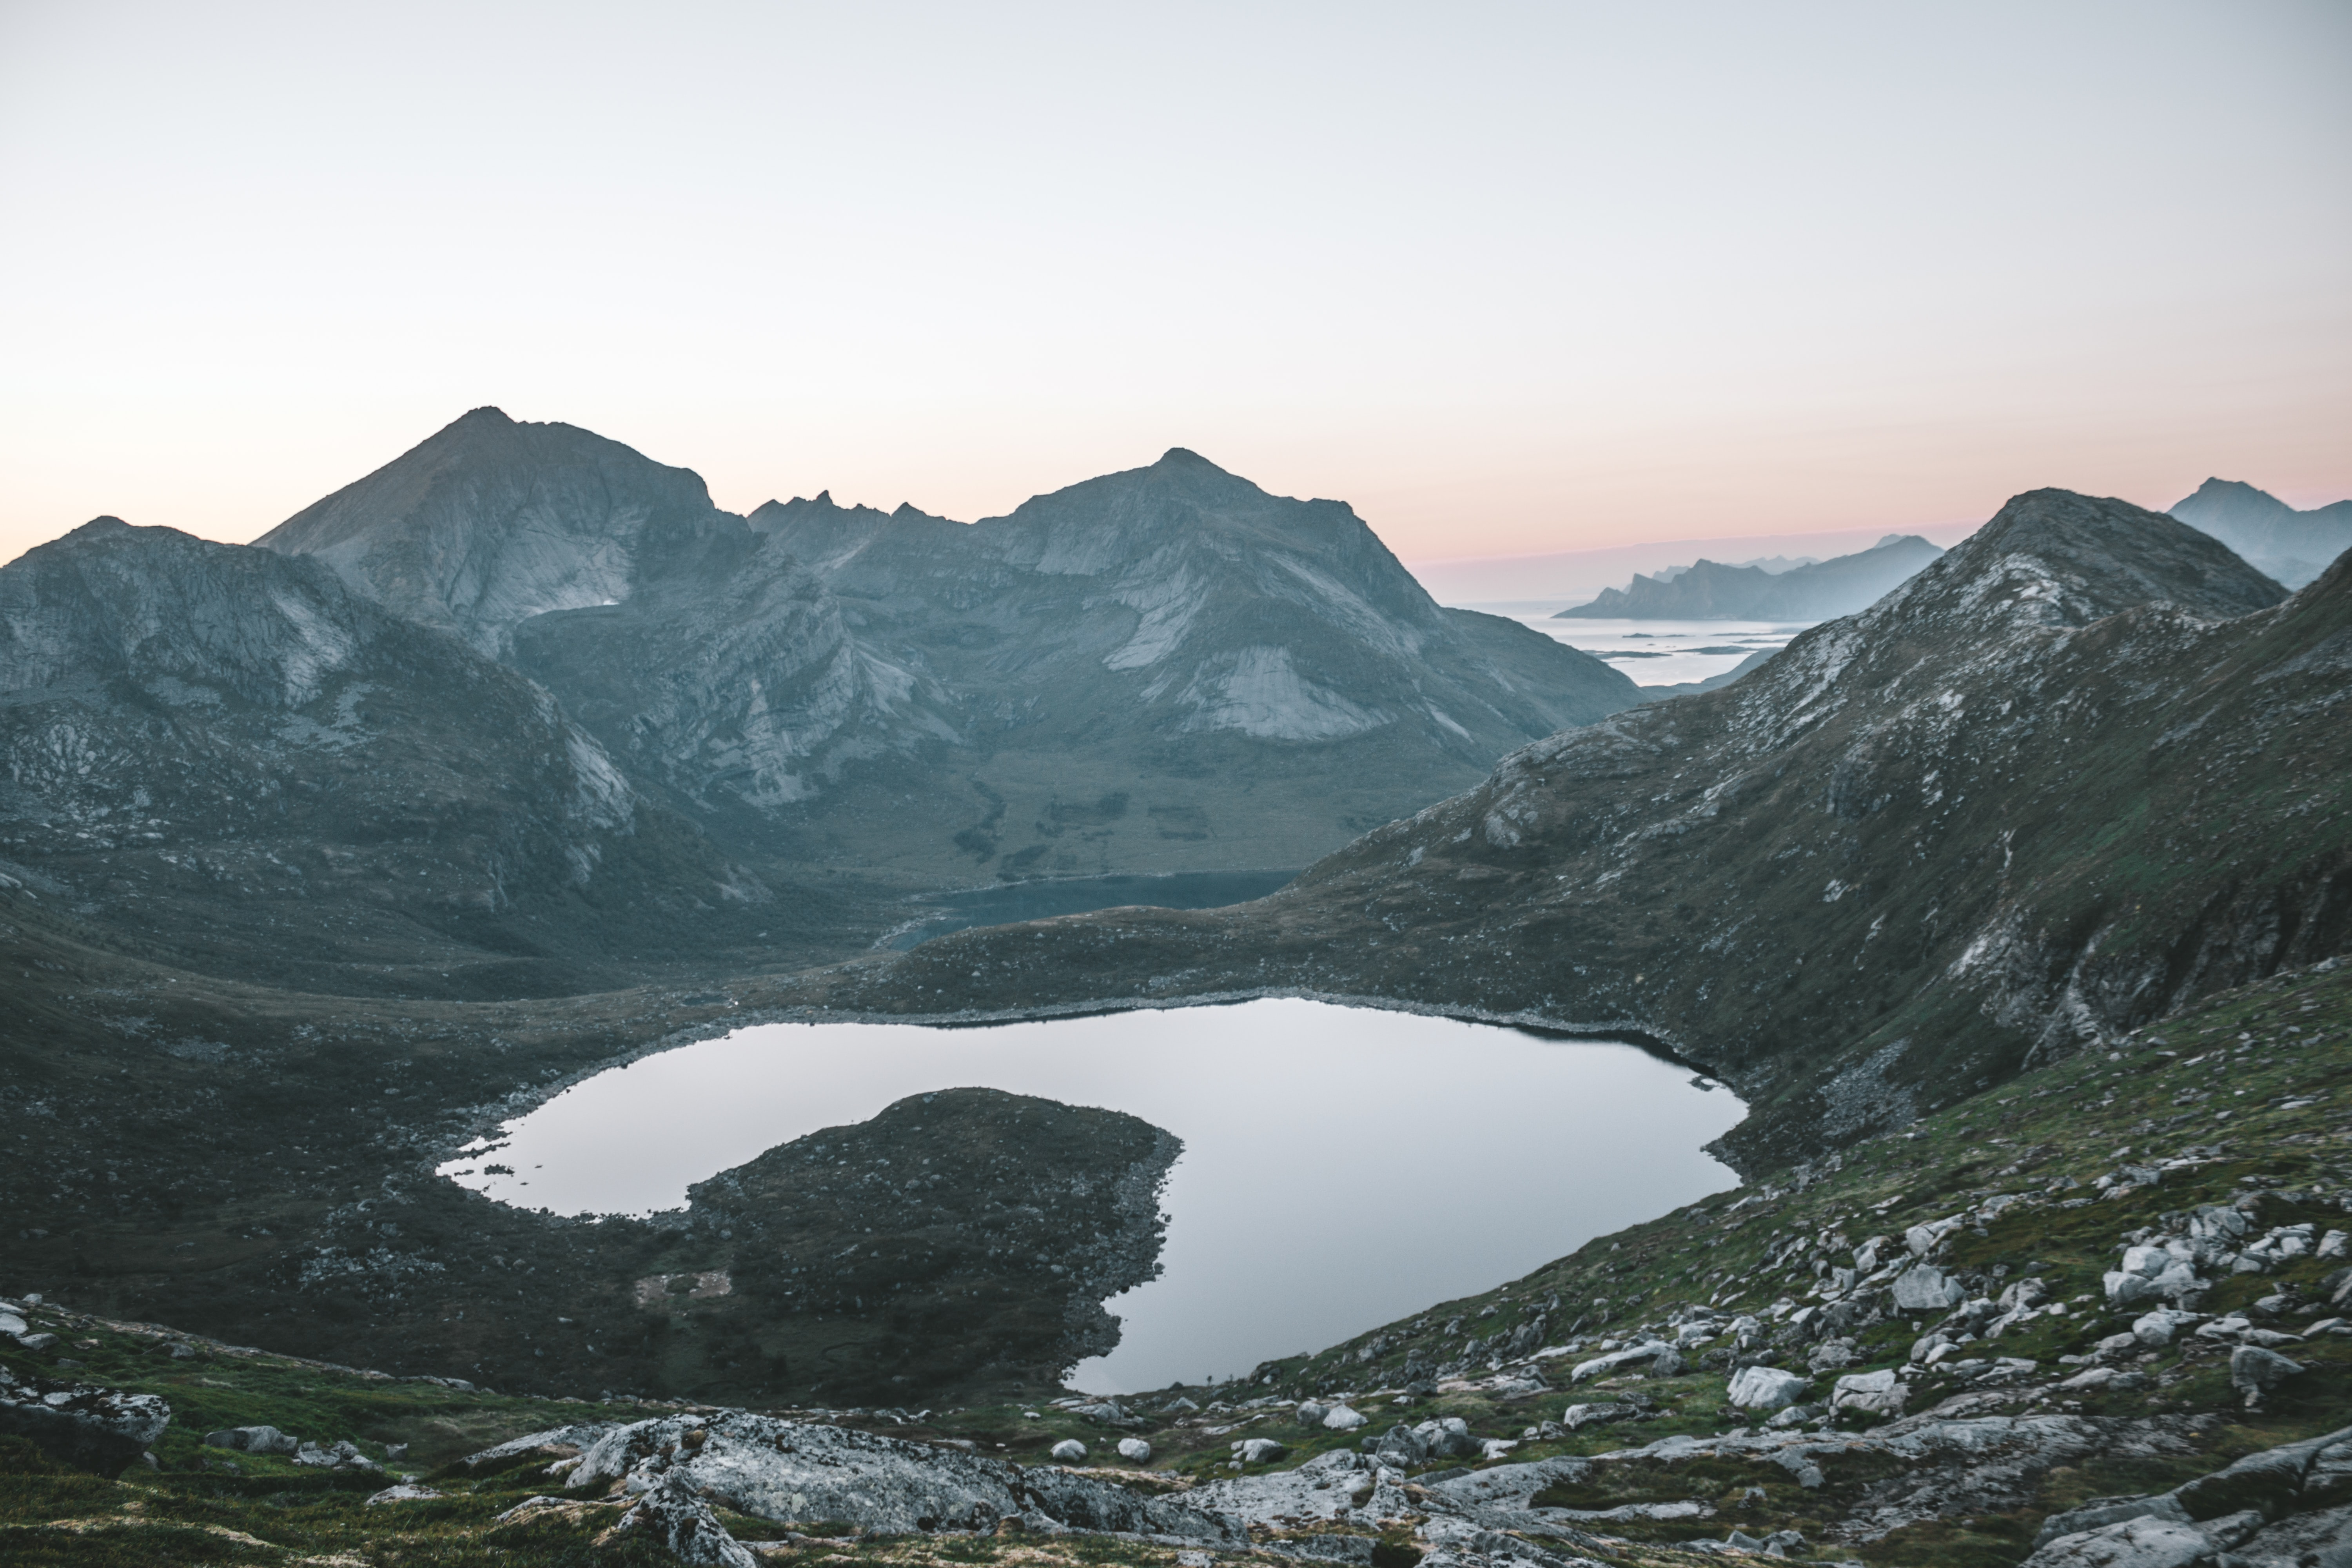 photo of mountains and body of water